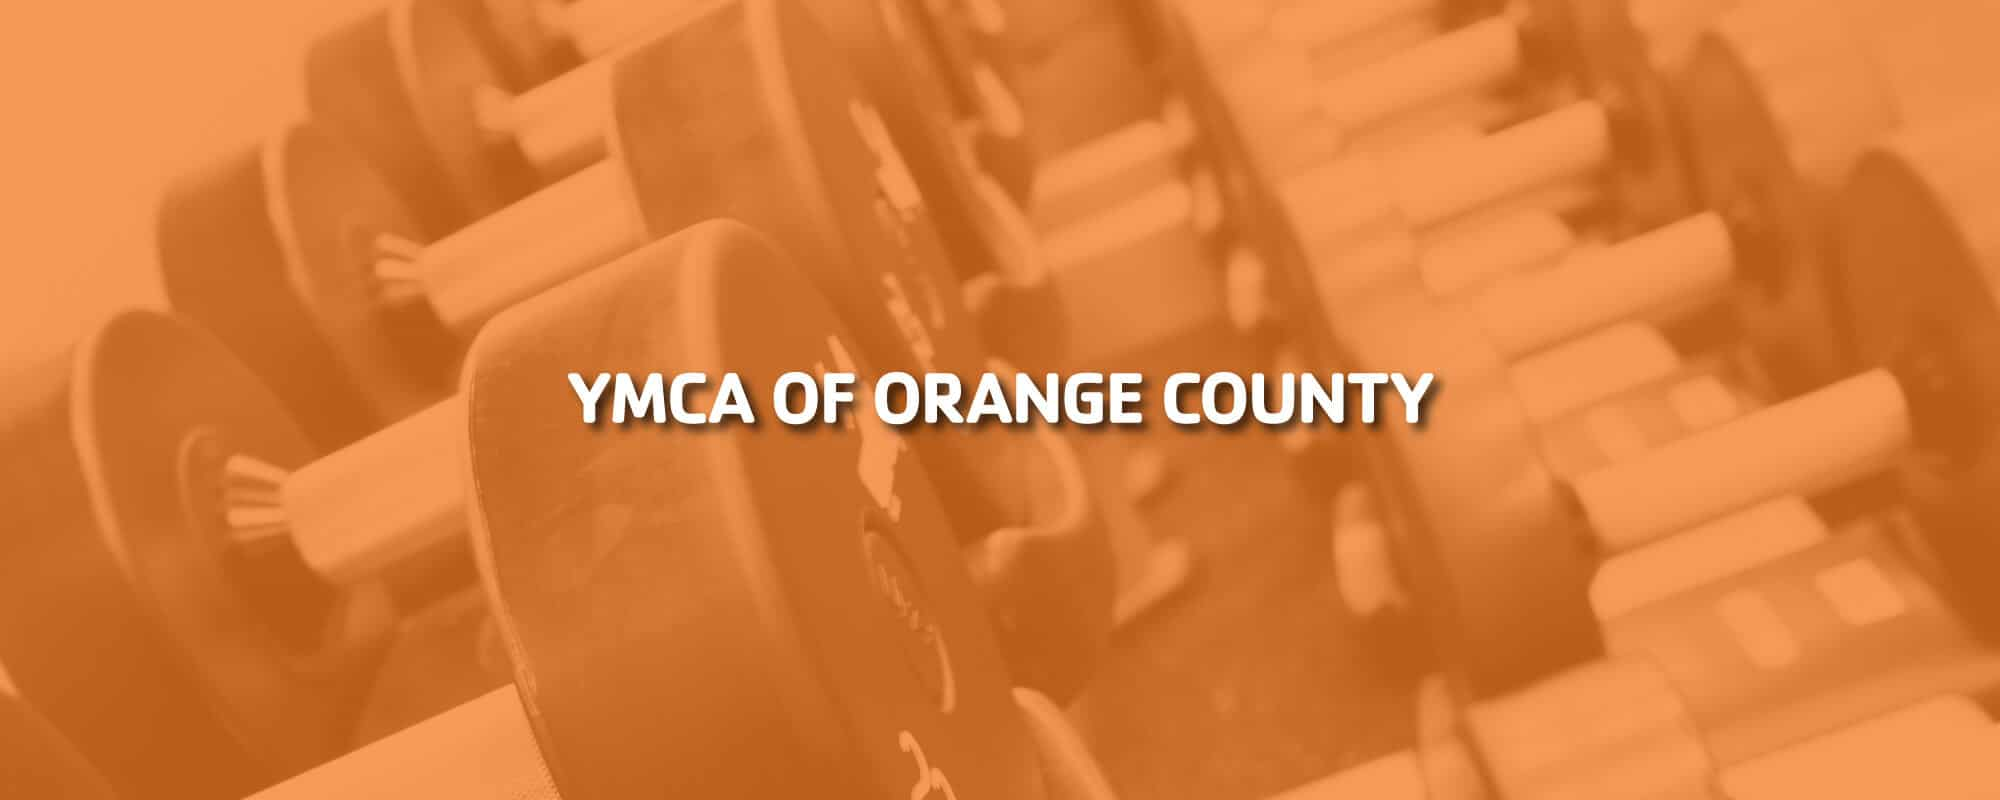 The YMCA of Orange County - Building Healthy Mind, Body